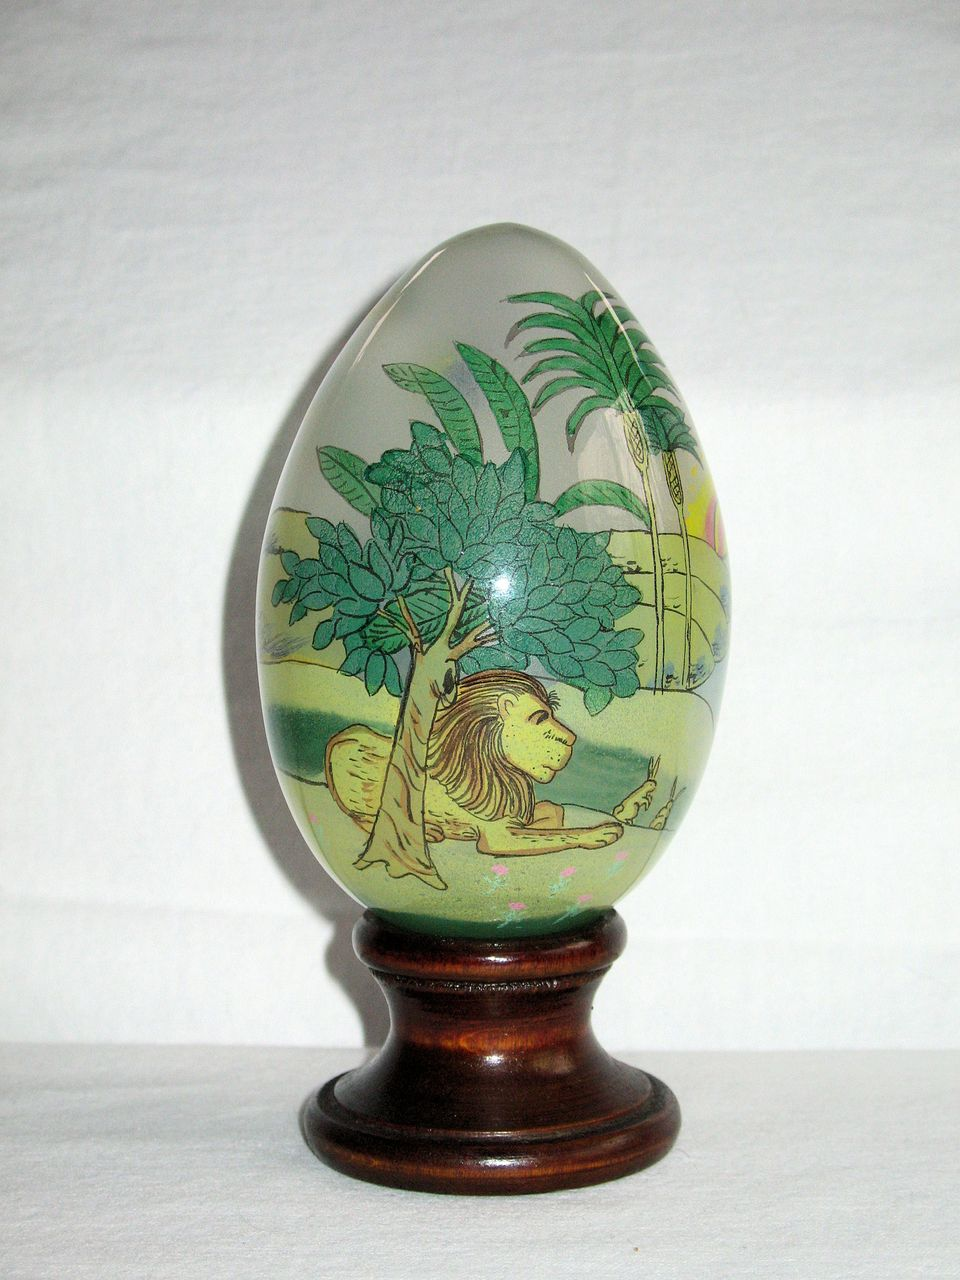 u201ctreasured visions u201d reverse  inside  painted glass egg with wooden from kcantiquecollect on ruby